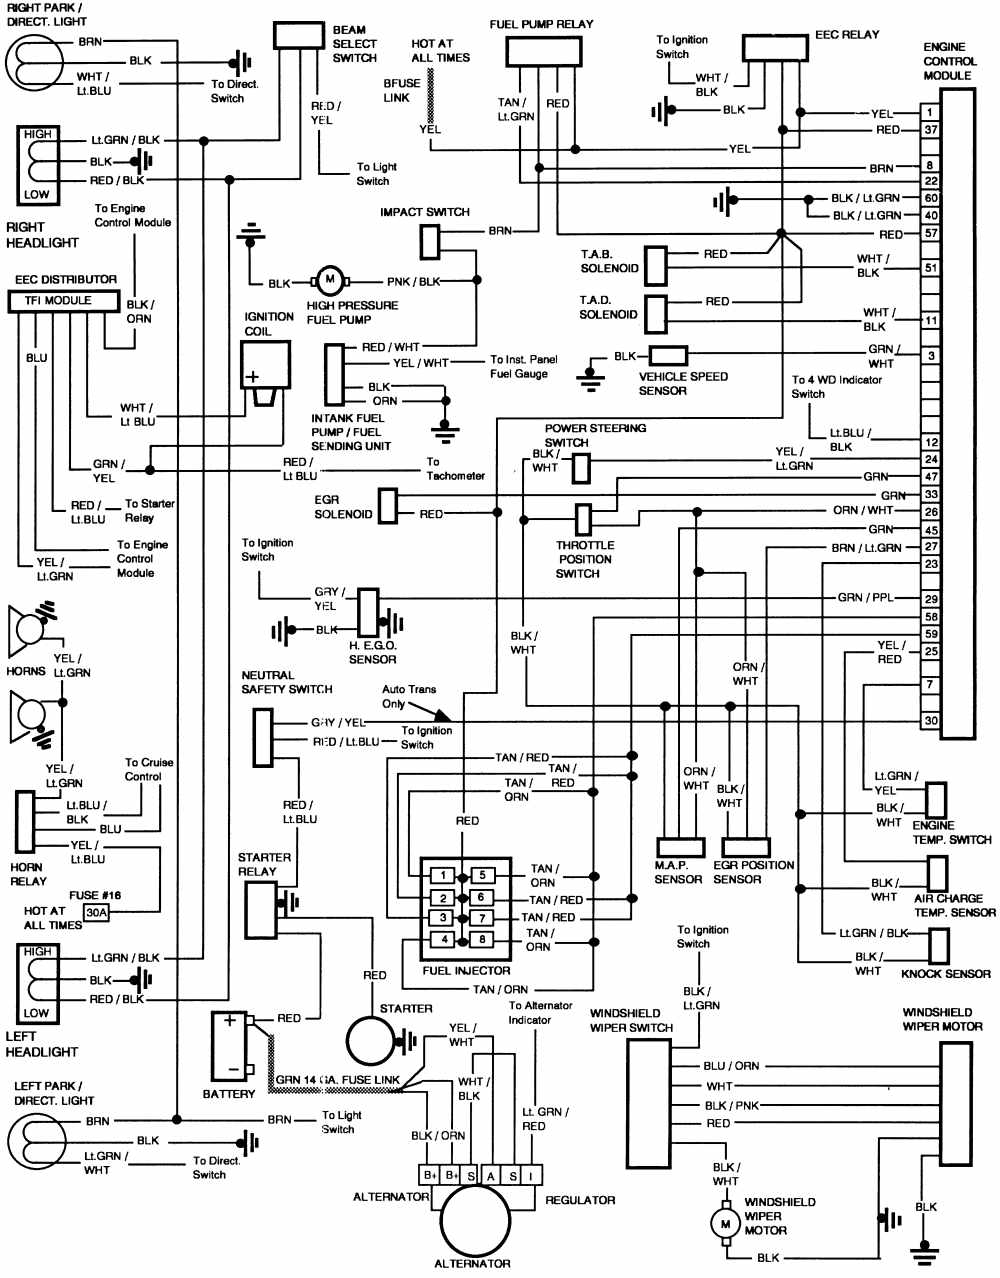 Peterbilt Truck 379 Model Family Electrical Schematic Manual Pdf together with 7 3 Water Separator Location together with John Deere 4400  pact Tractor Wiring Diagram besides Honda Xl100 Motorcycle  plete Wiring further Chevrolet 5 7 Liter V8 Engine Diagram Sensors. on cat 5 wiring diagram pdf